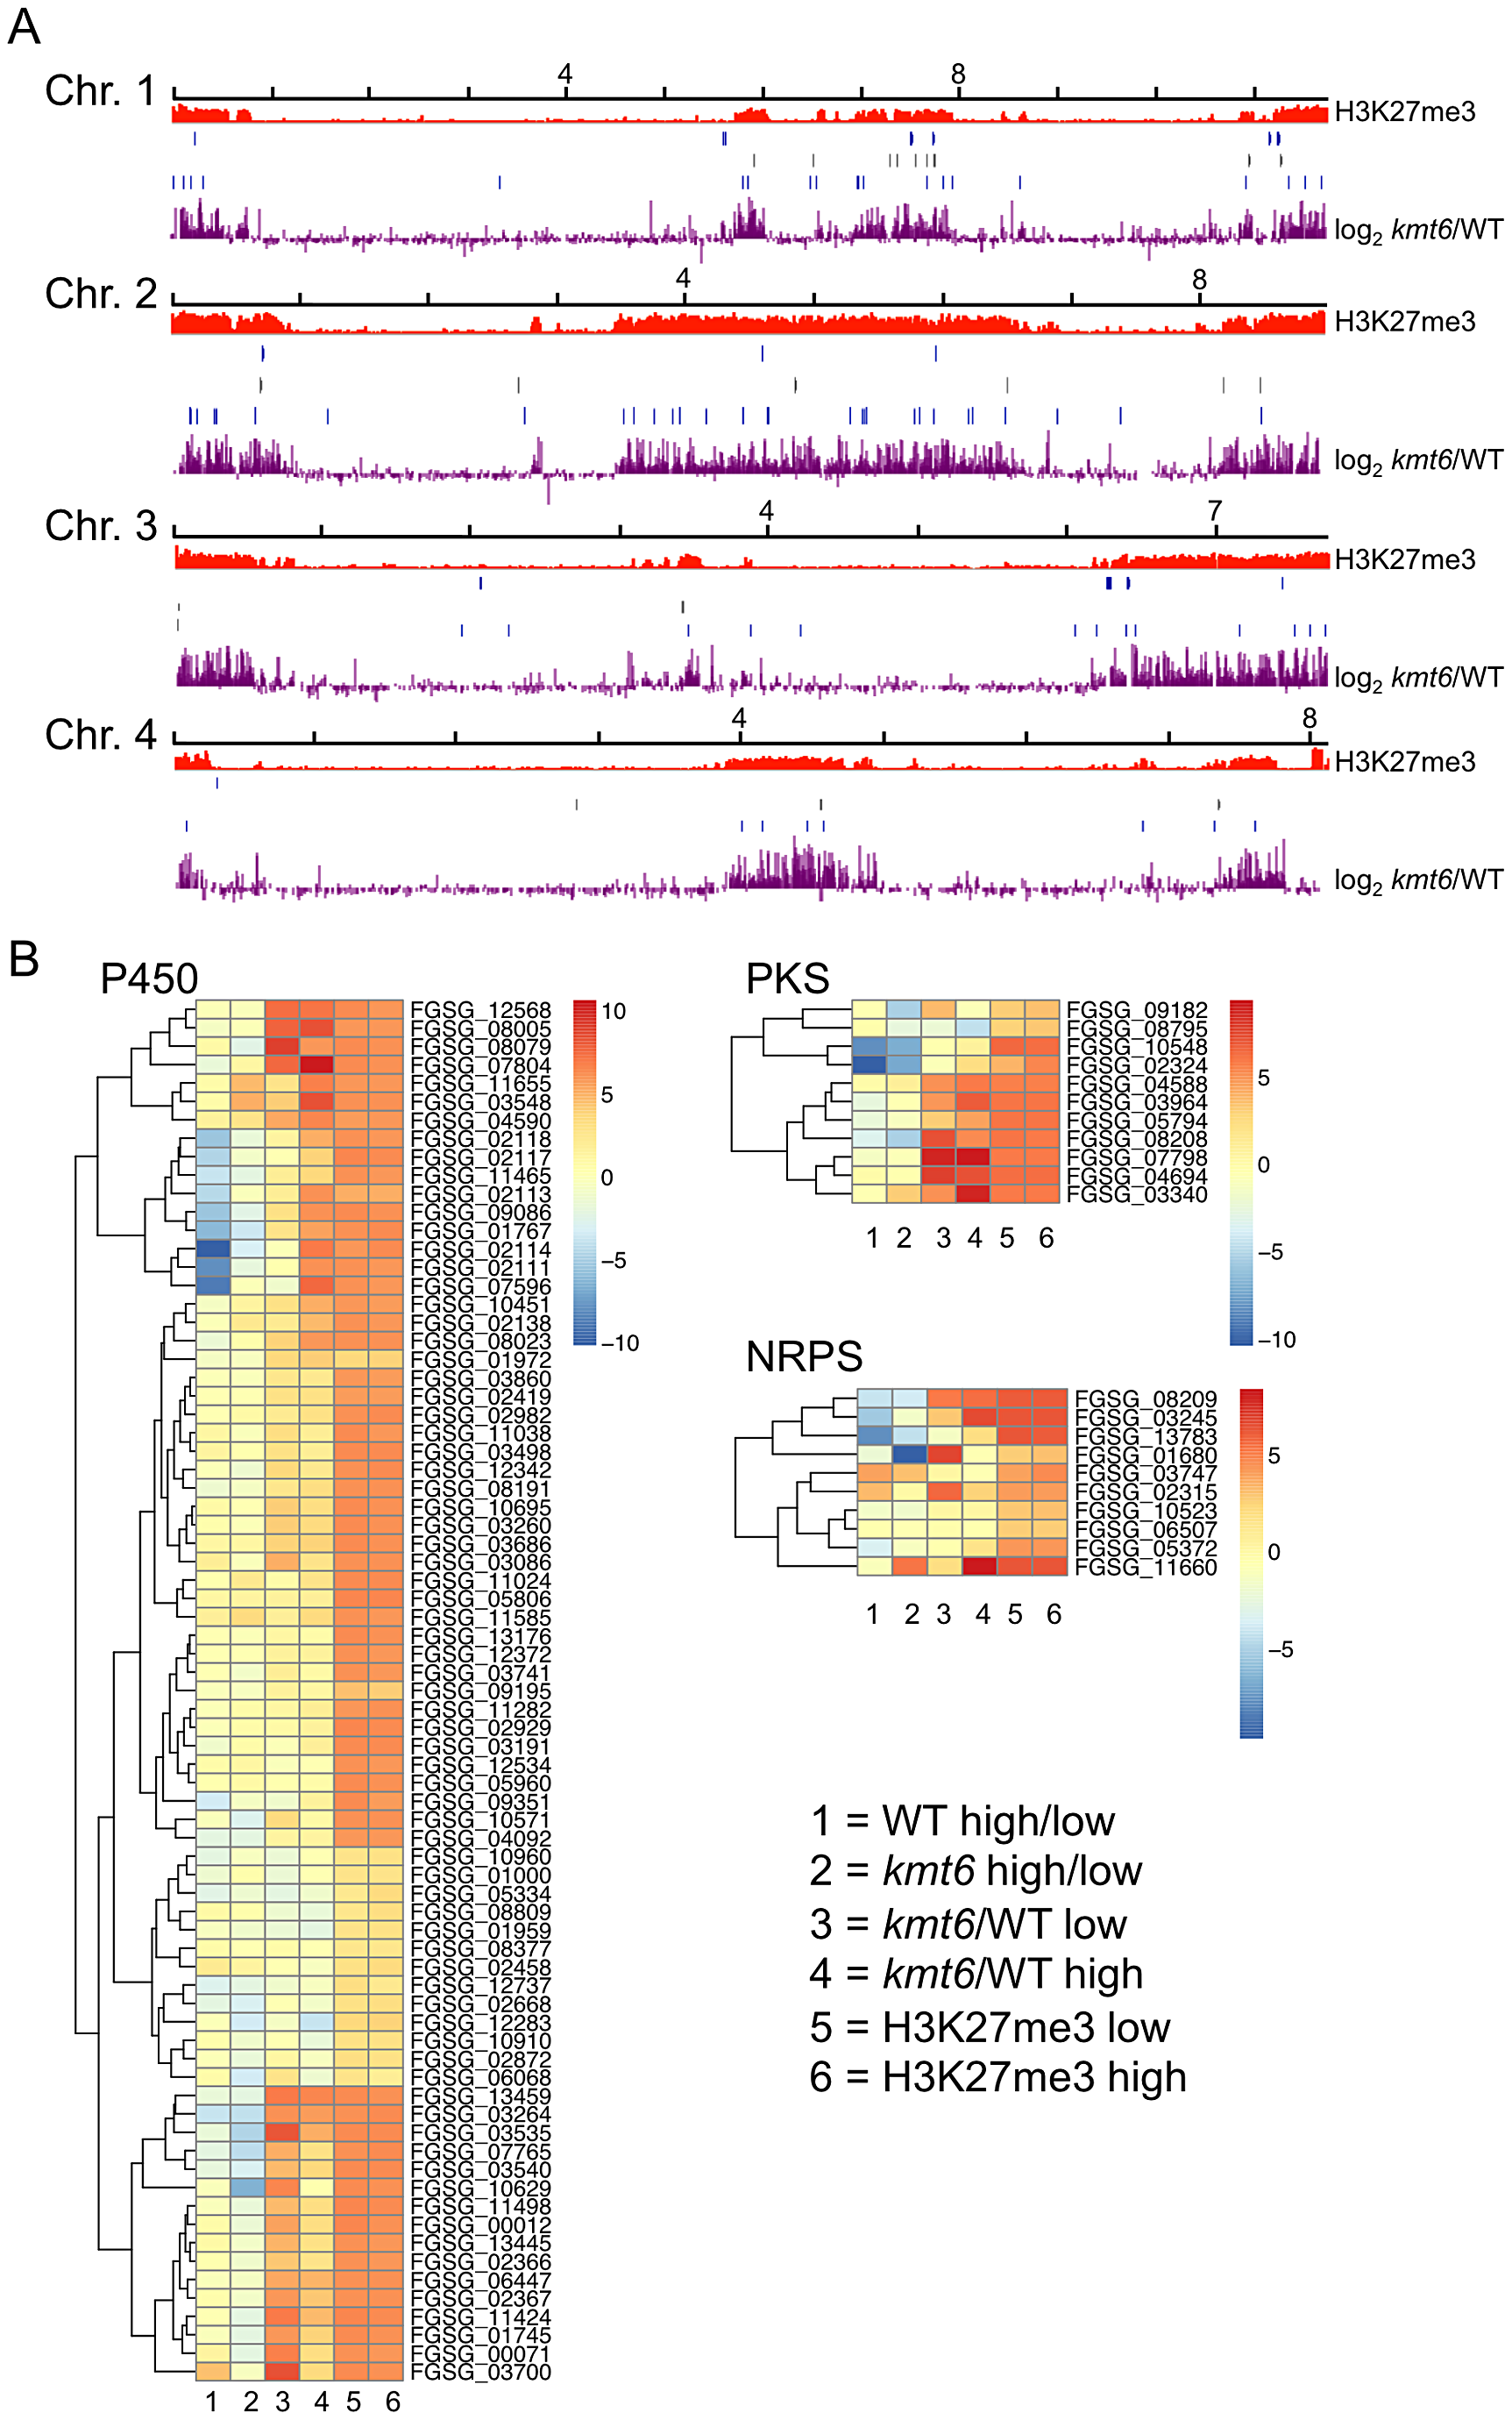 Genes involved in secondary metabolism are found in regions of H3K27me3, but not all are induced by mutation of <i>kmt6</i>.